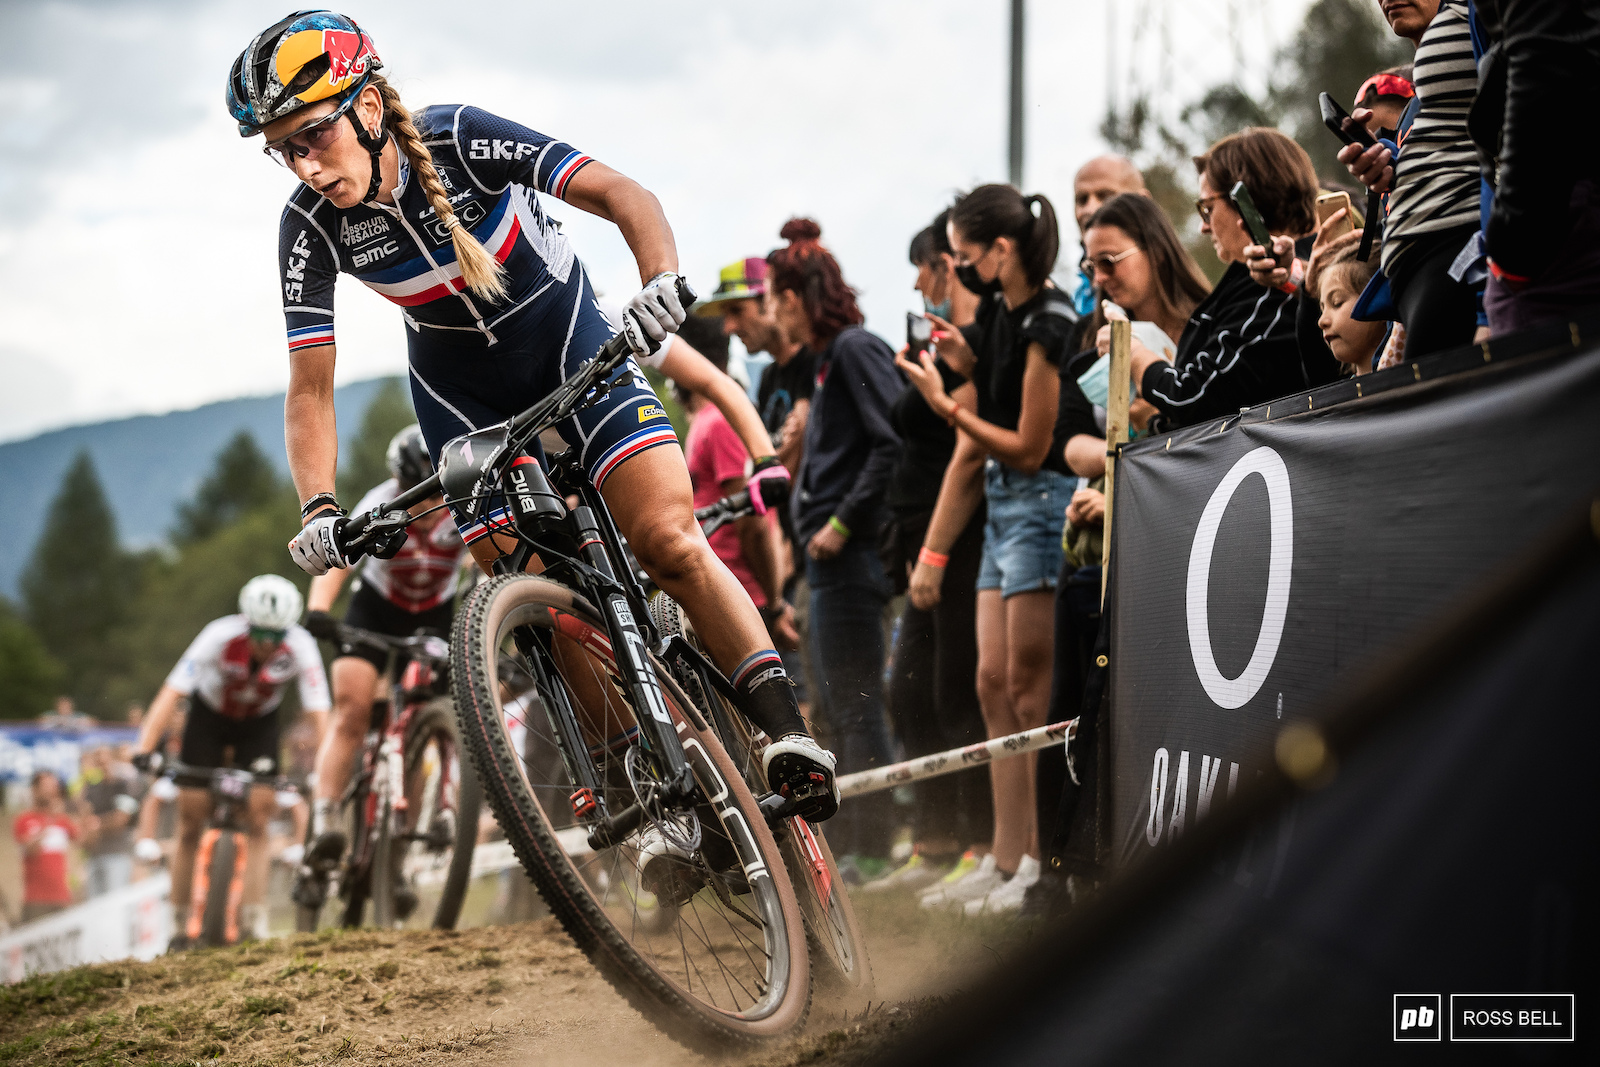 Pauline Ferrand Prevot was a permanent fixture at the front of the field today.